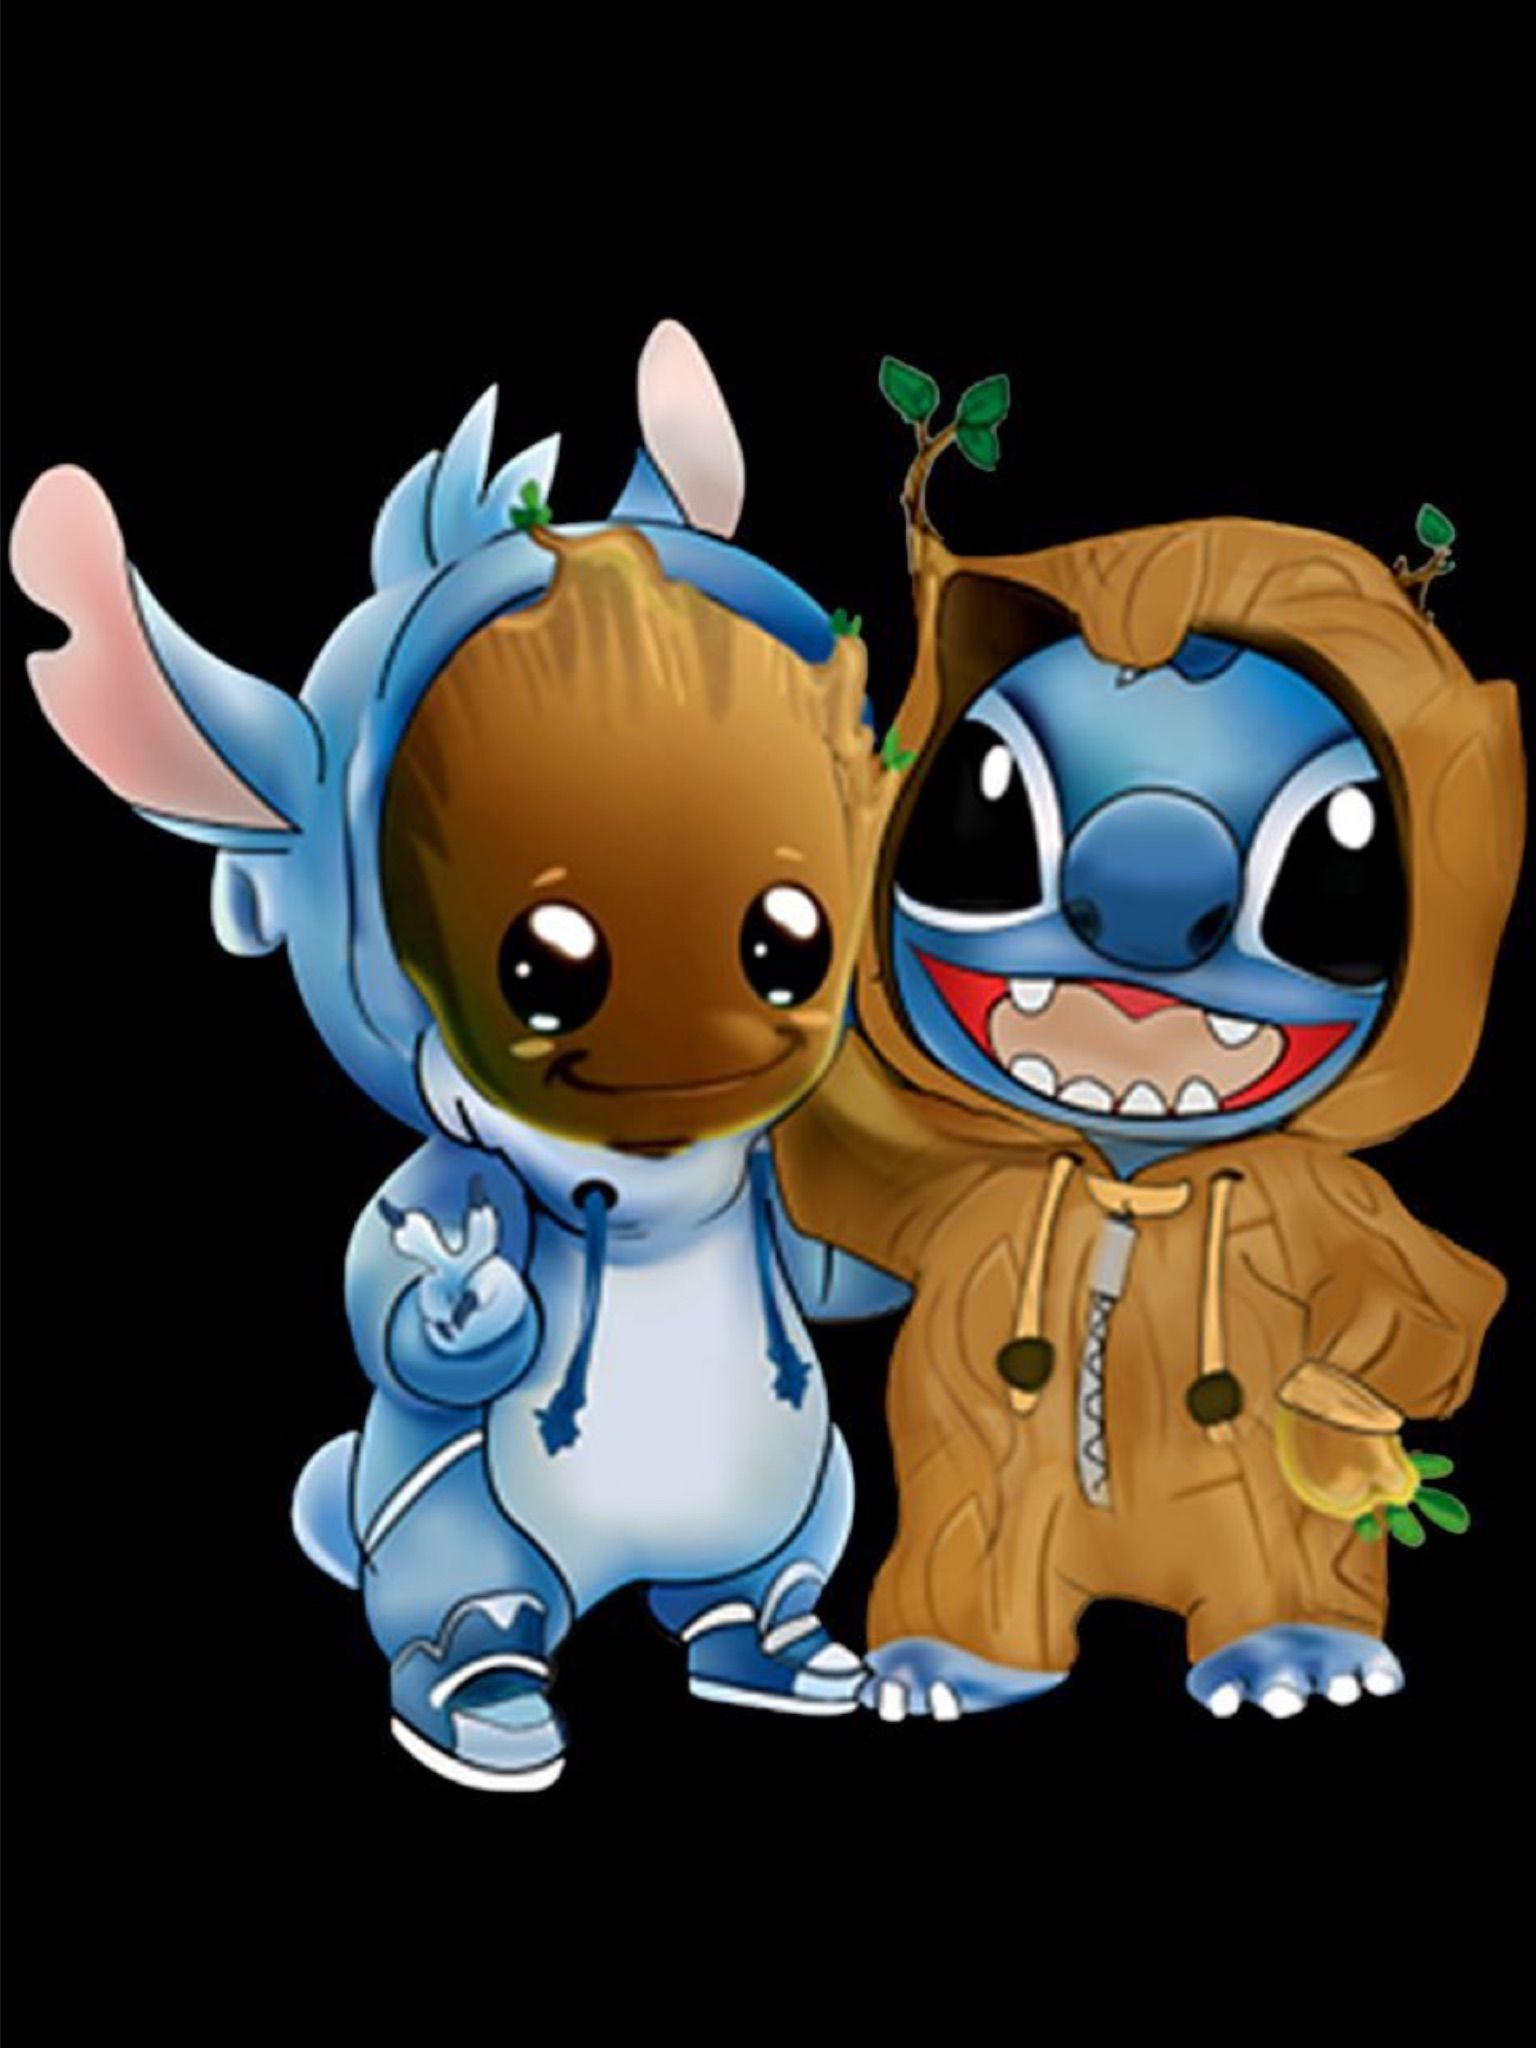 Baby Stitch Wallpapers Top Free Baby Stitch Backgrounds